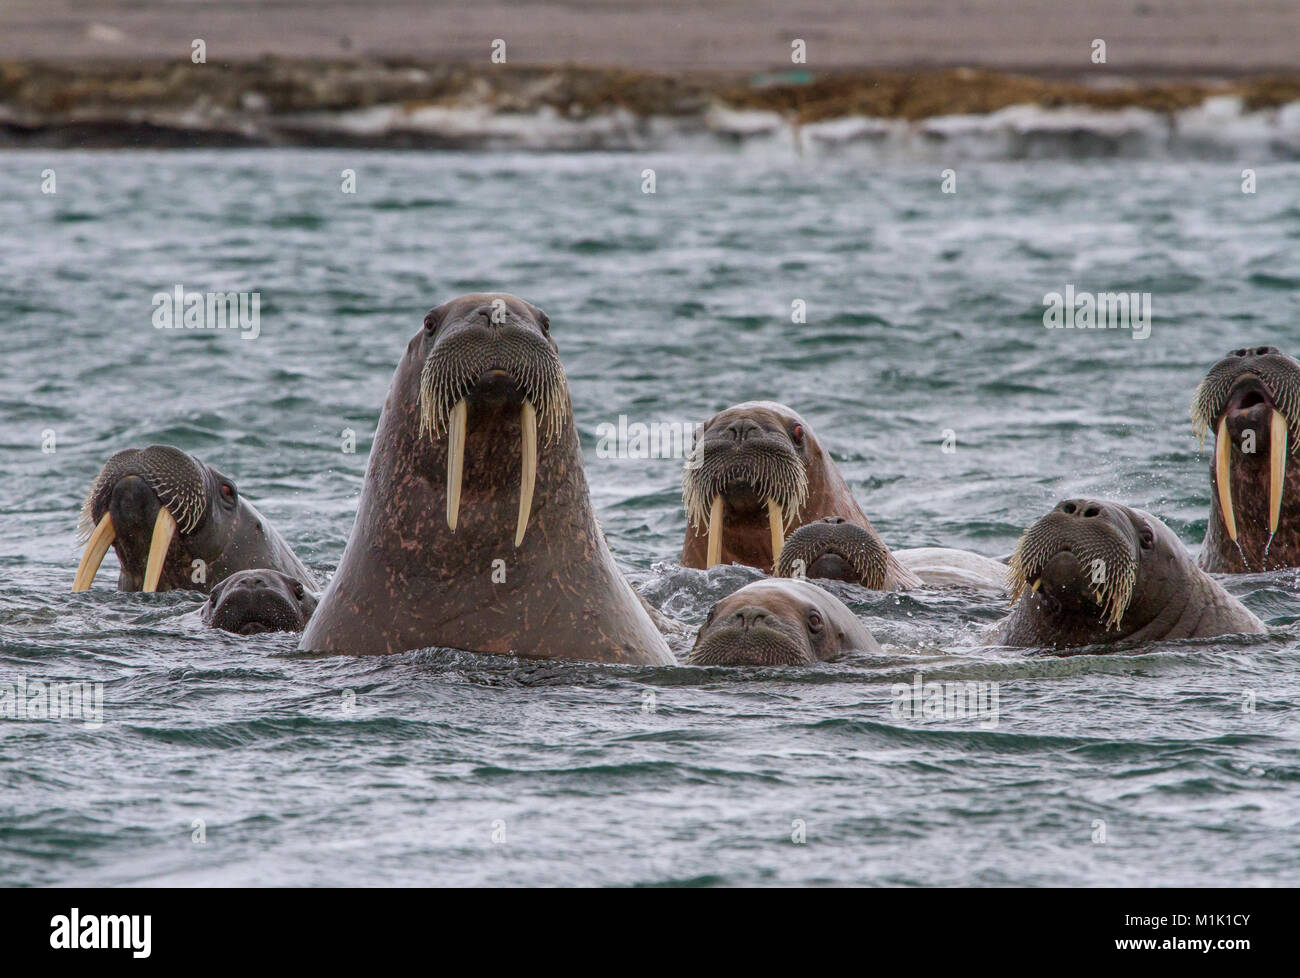 walruses in archipelago of Svalbard - Stock Image